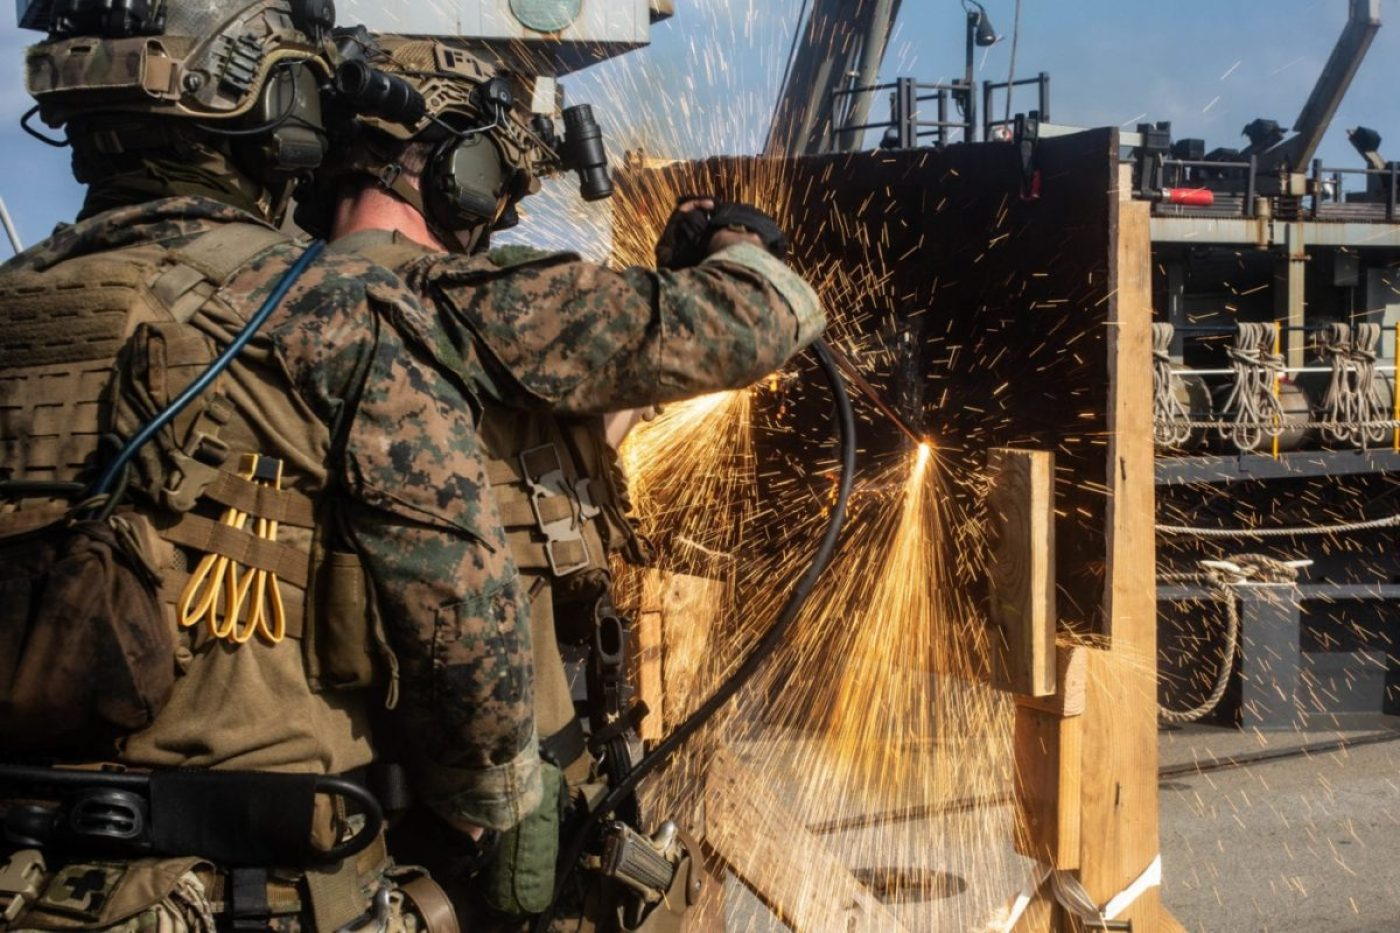 Force Reconnaissance Marines with Command Element, 31st Marine Expeditionary Unit (MEU), cut through metal during a simulated VBSS mission drills aboard dock landing ship USS Germantown (LSD 42). (U.S. Marine Corps photo by Lance Cpl. Kolby Leger).